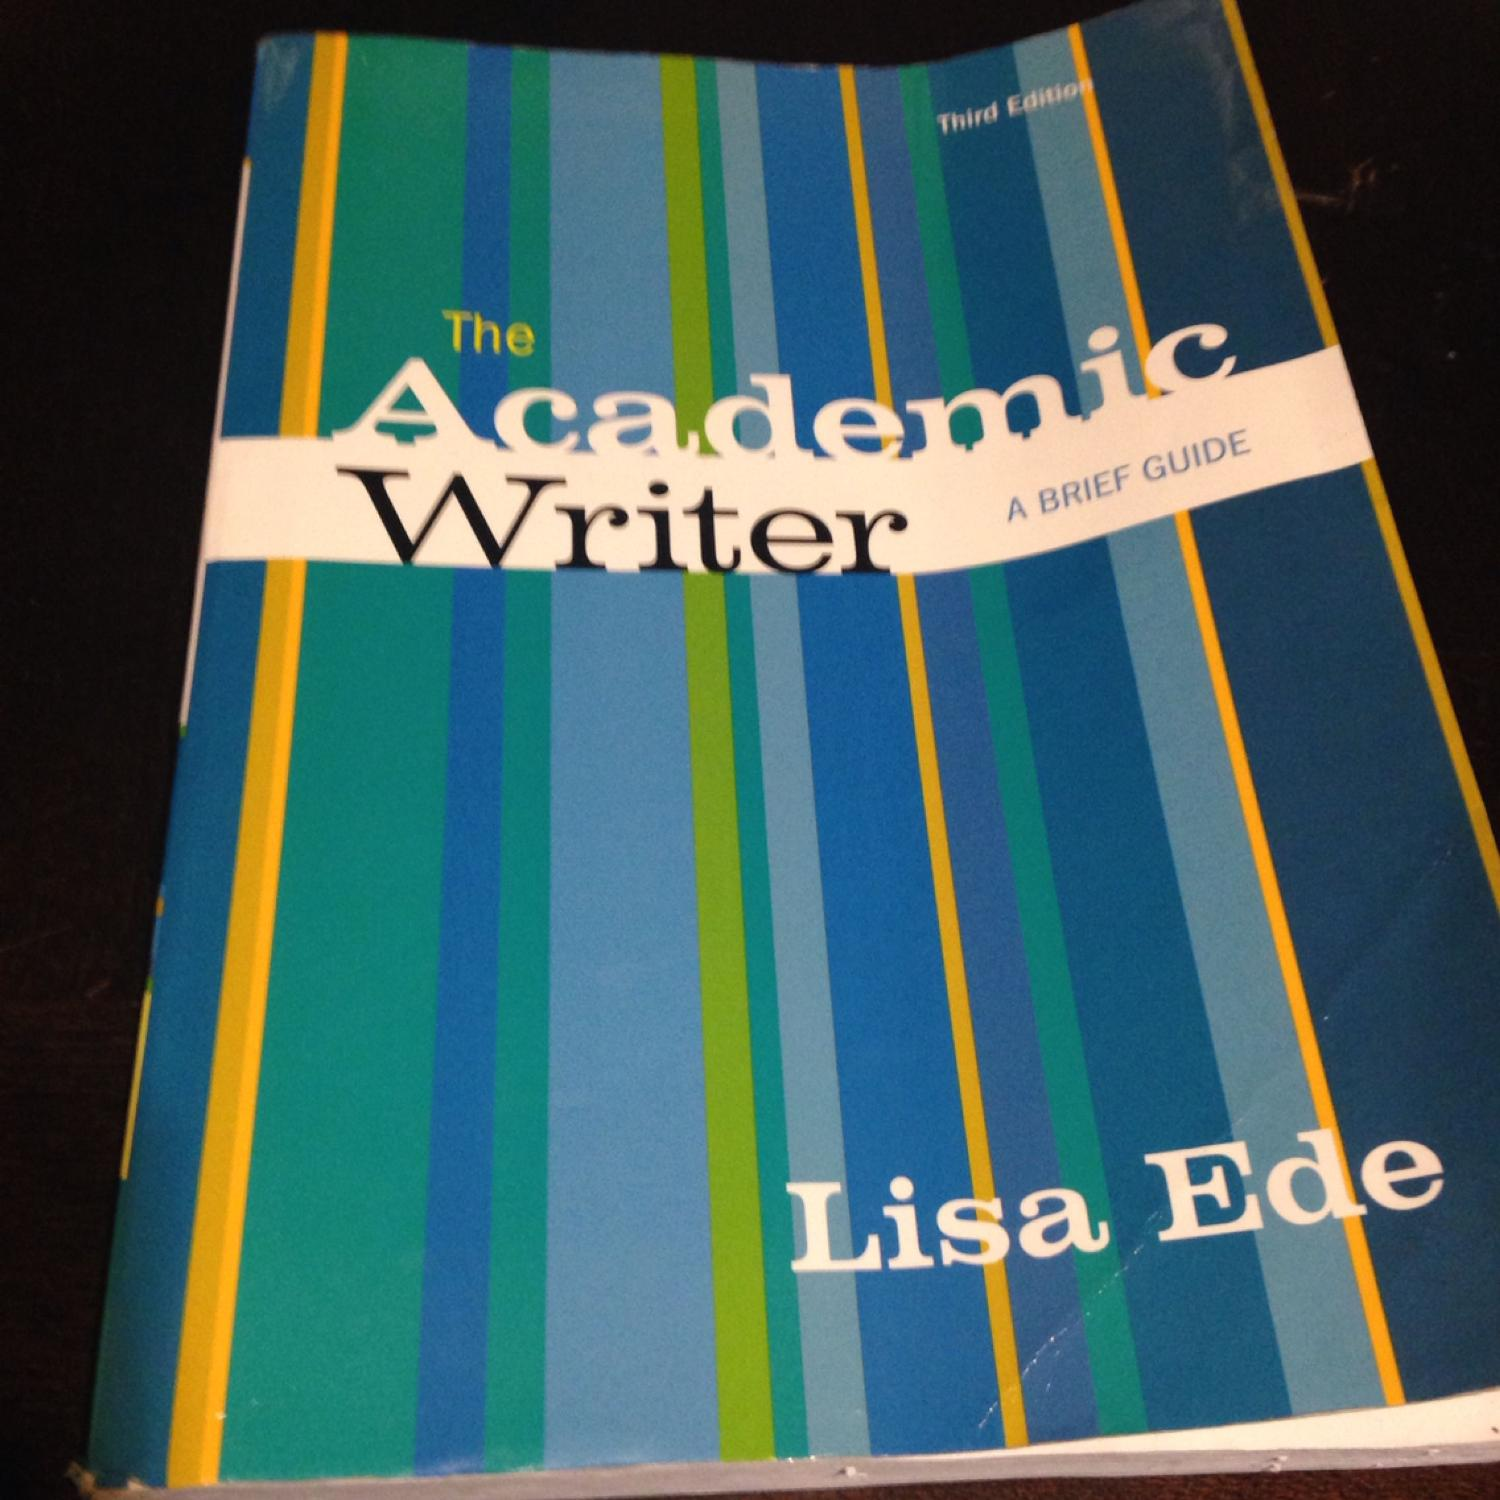 Best The Academic Writer A Brief Guide. Third Edition. Lisa Ede for sale in  Mountain Brook, Alabama for 2018